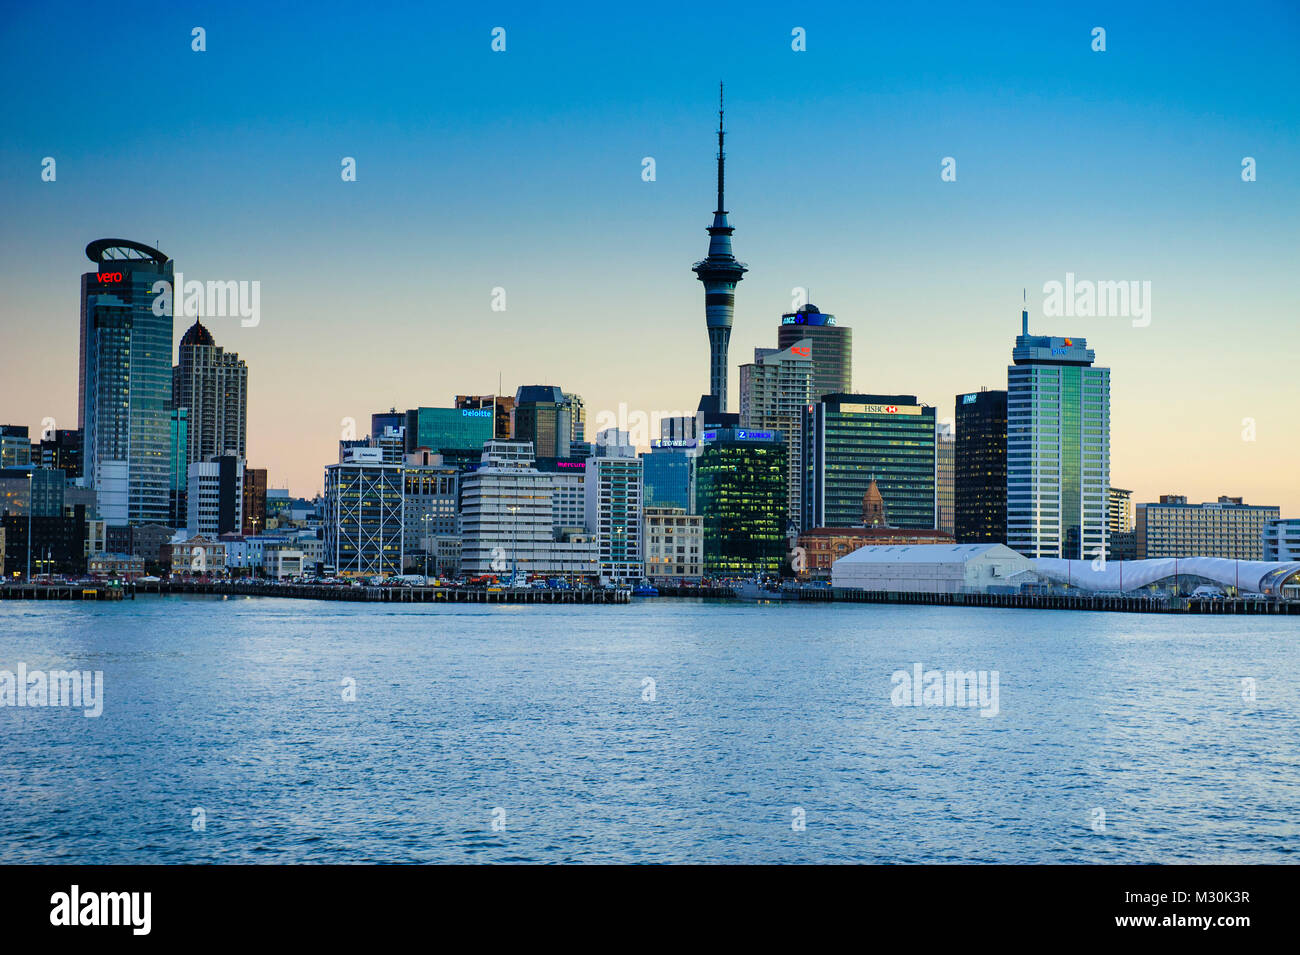 Skyline of Auckland, New Zealand - Stock Image